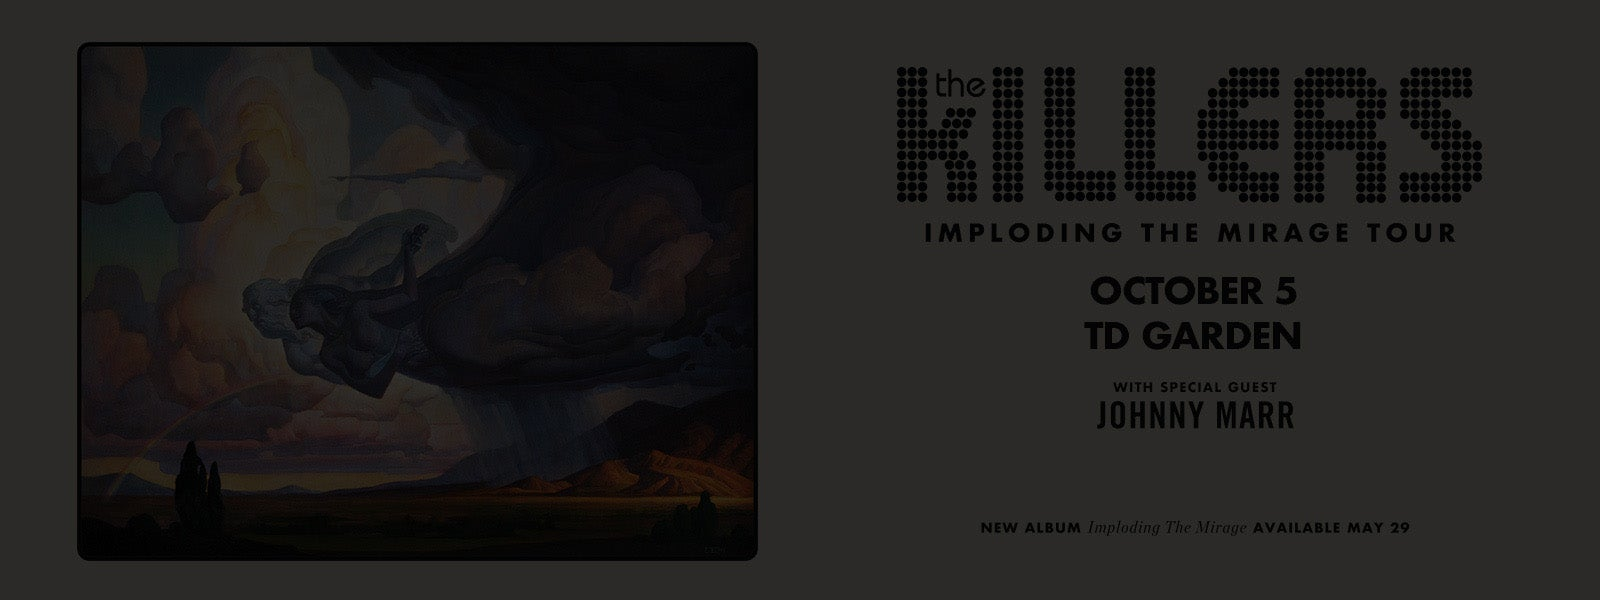 The Killers - Postponed